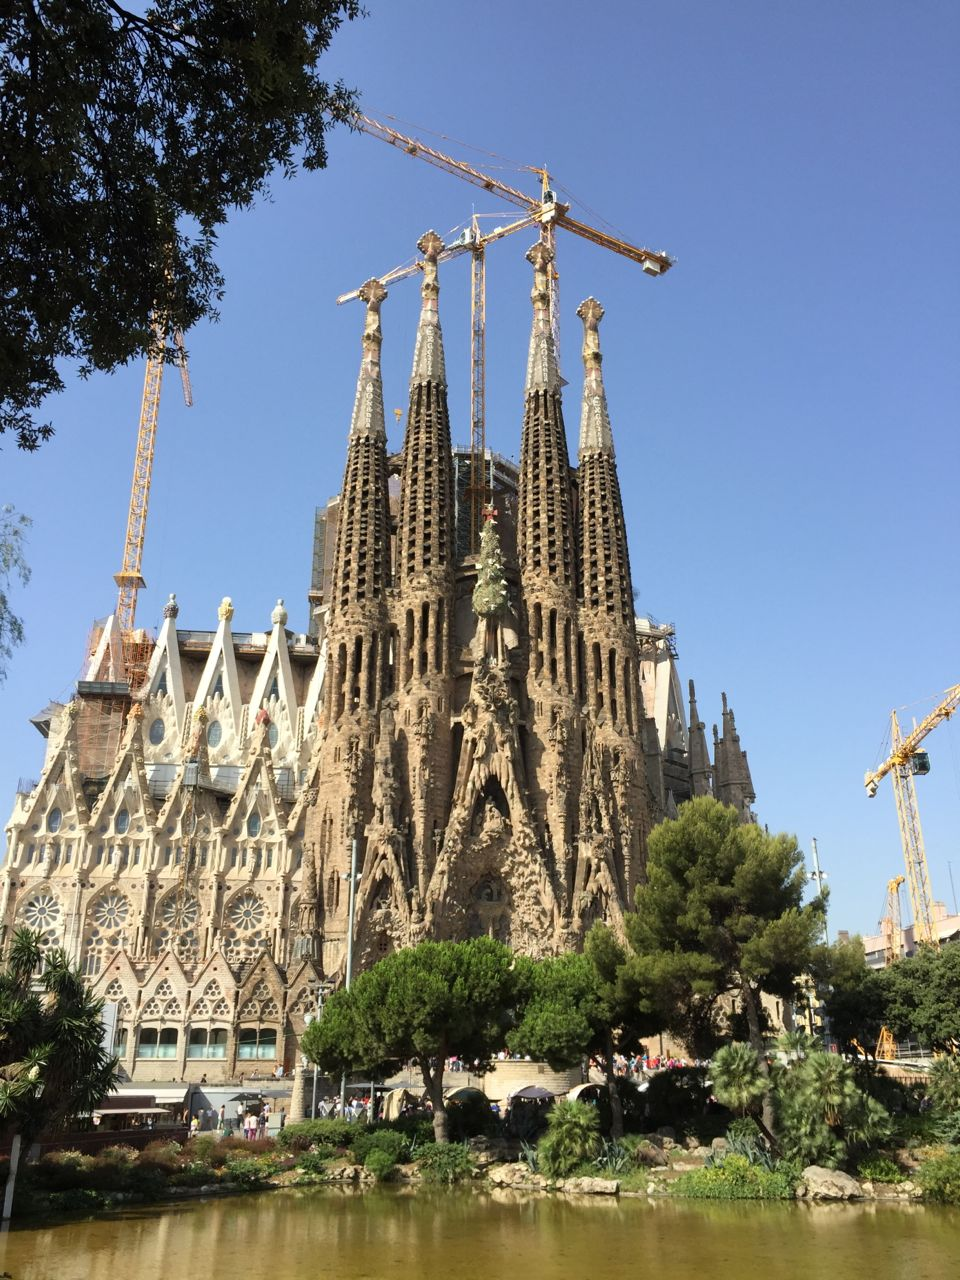 Exterior of Gaudi's Sagrada Familia in Barcelona, Spain. Construction and repairs are ongoing.